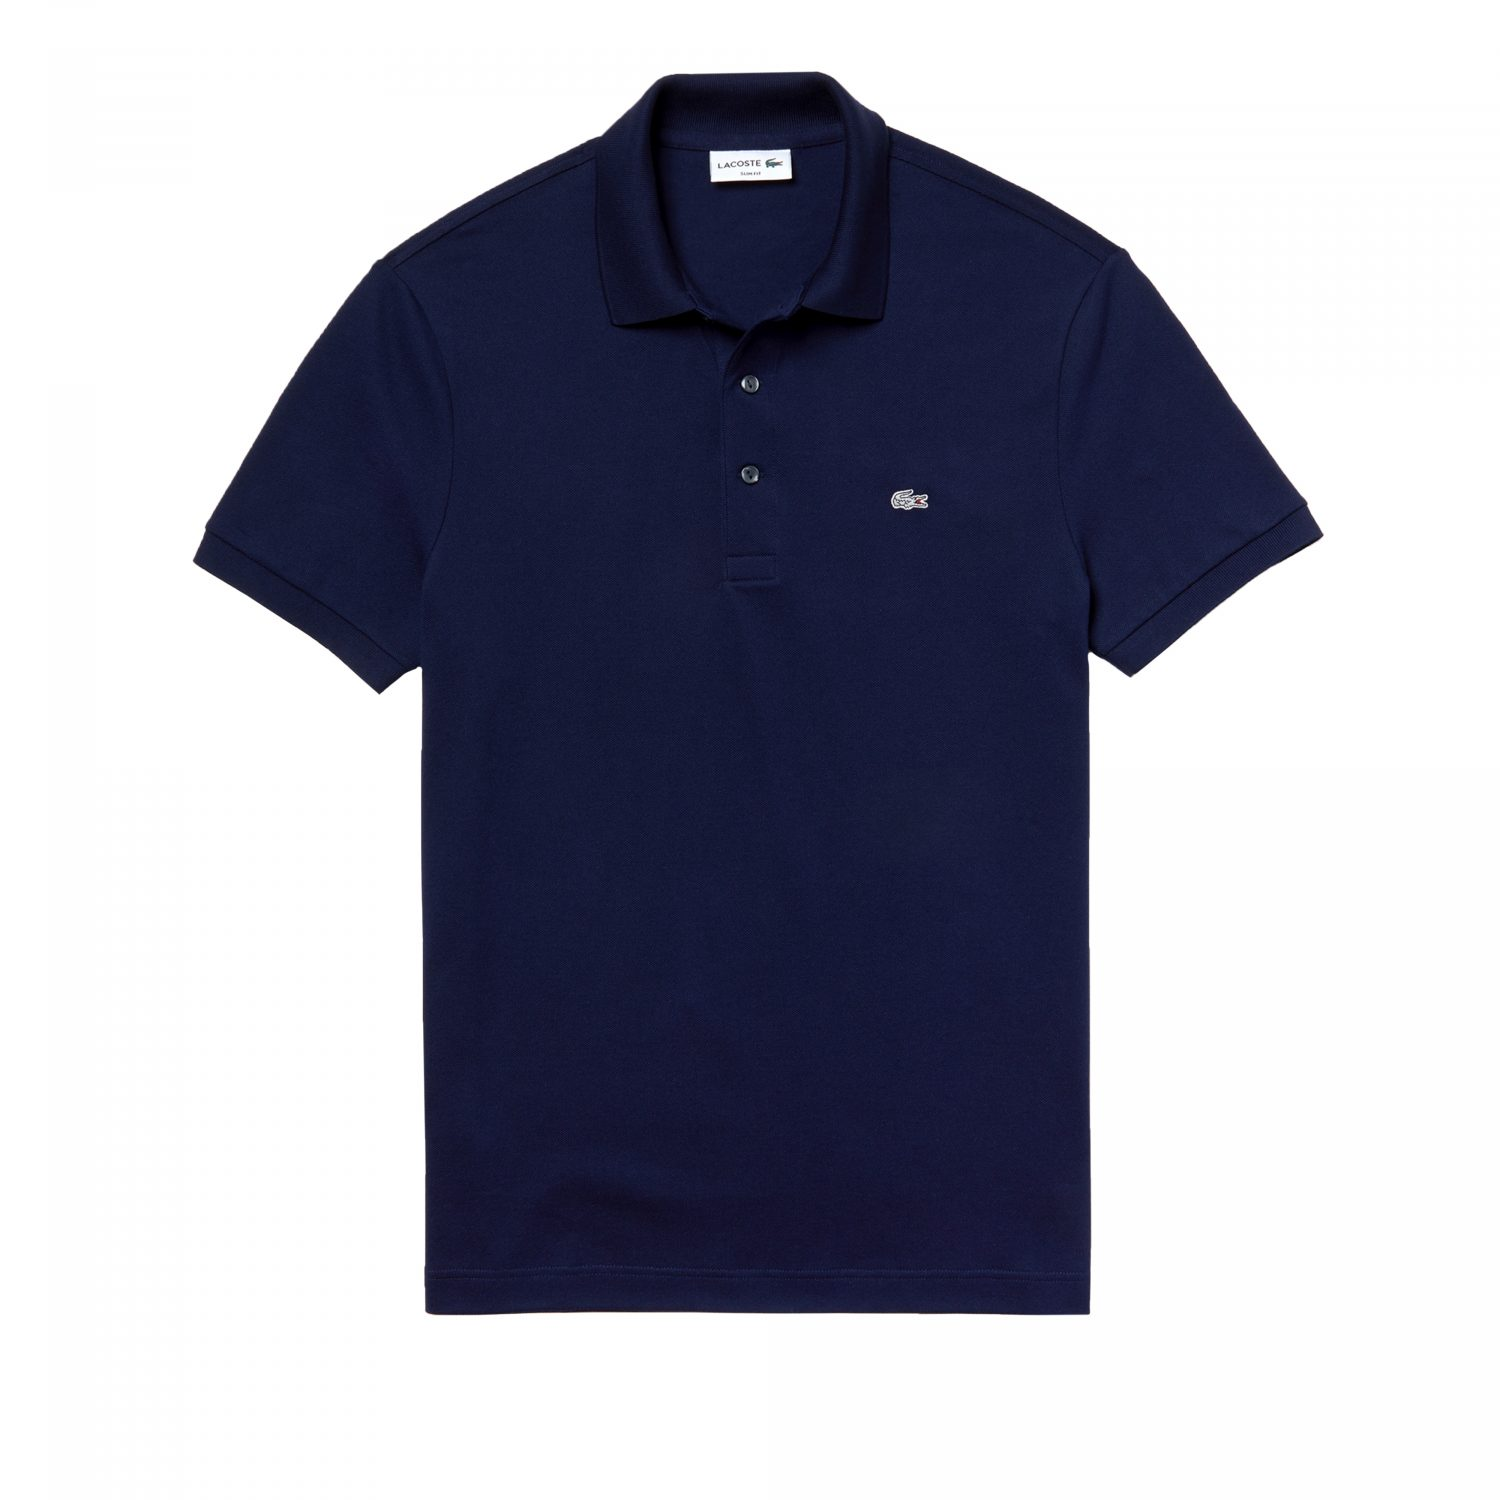 Lacoste polo donkerblauw zilver